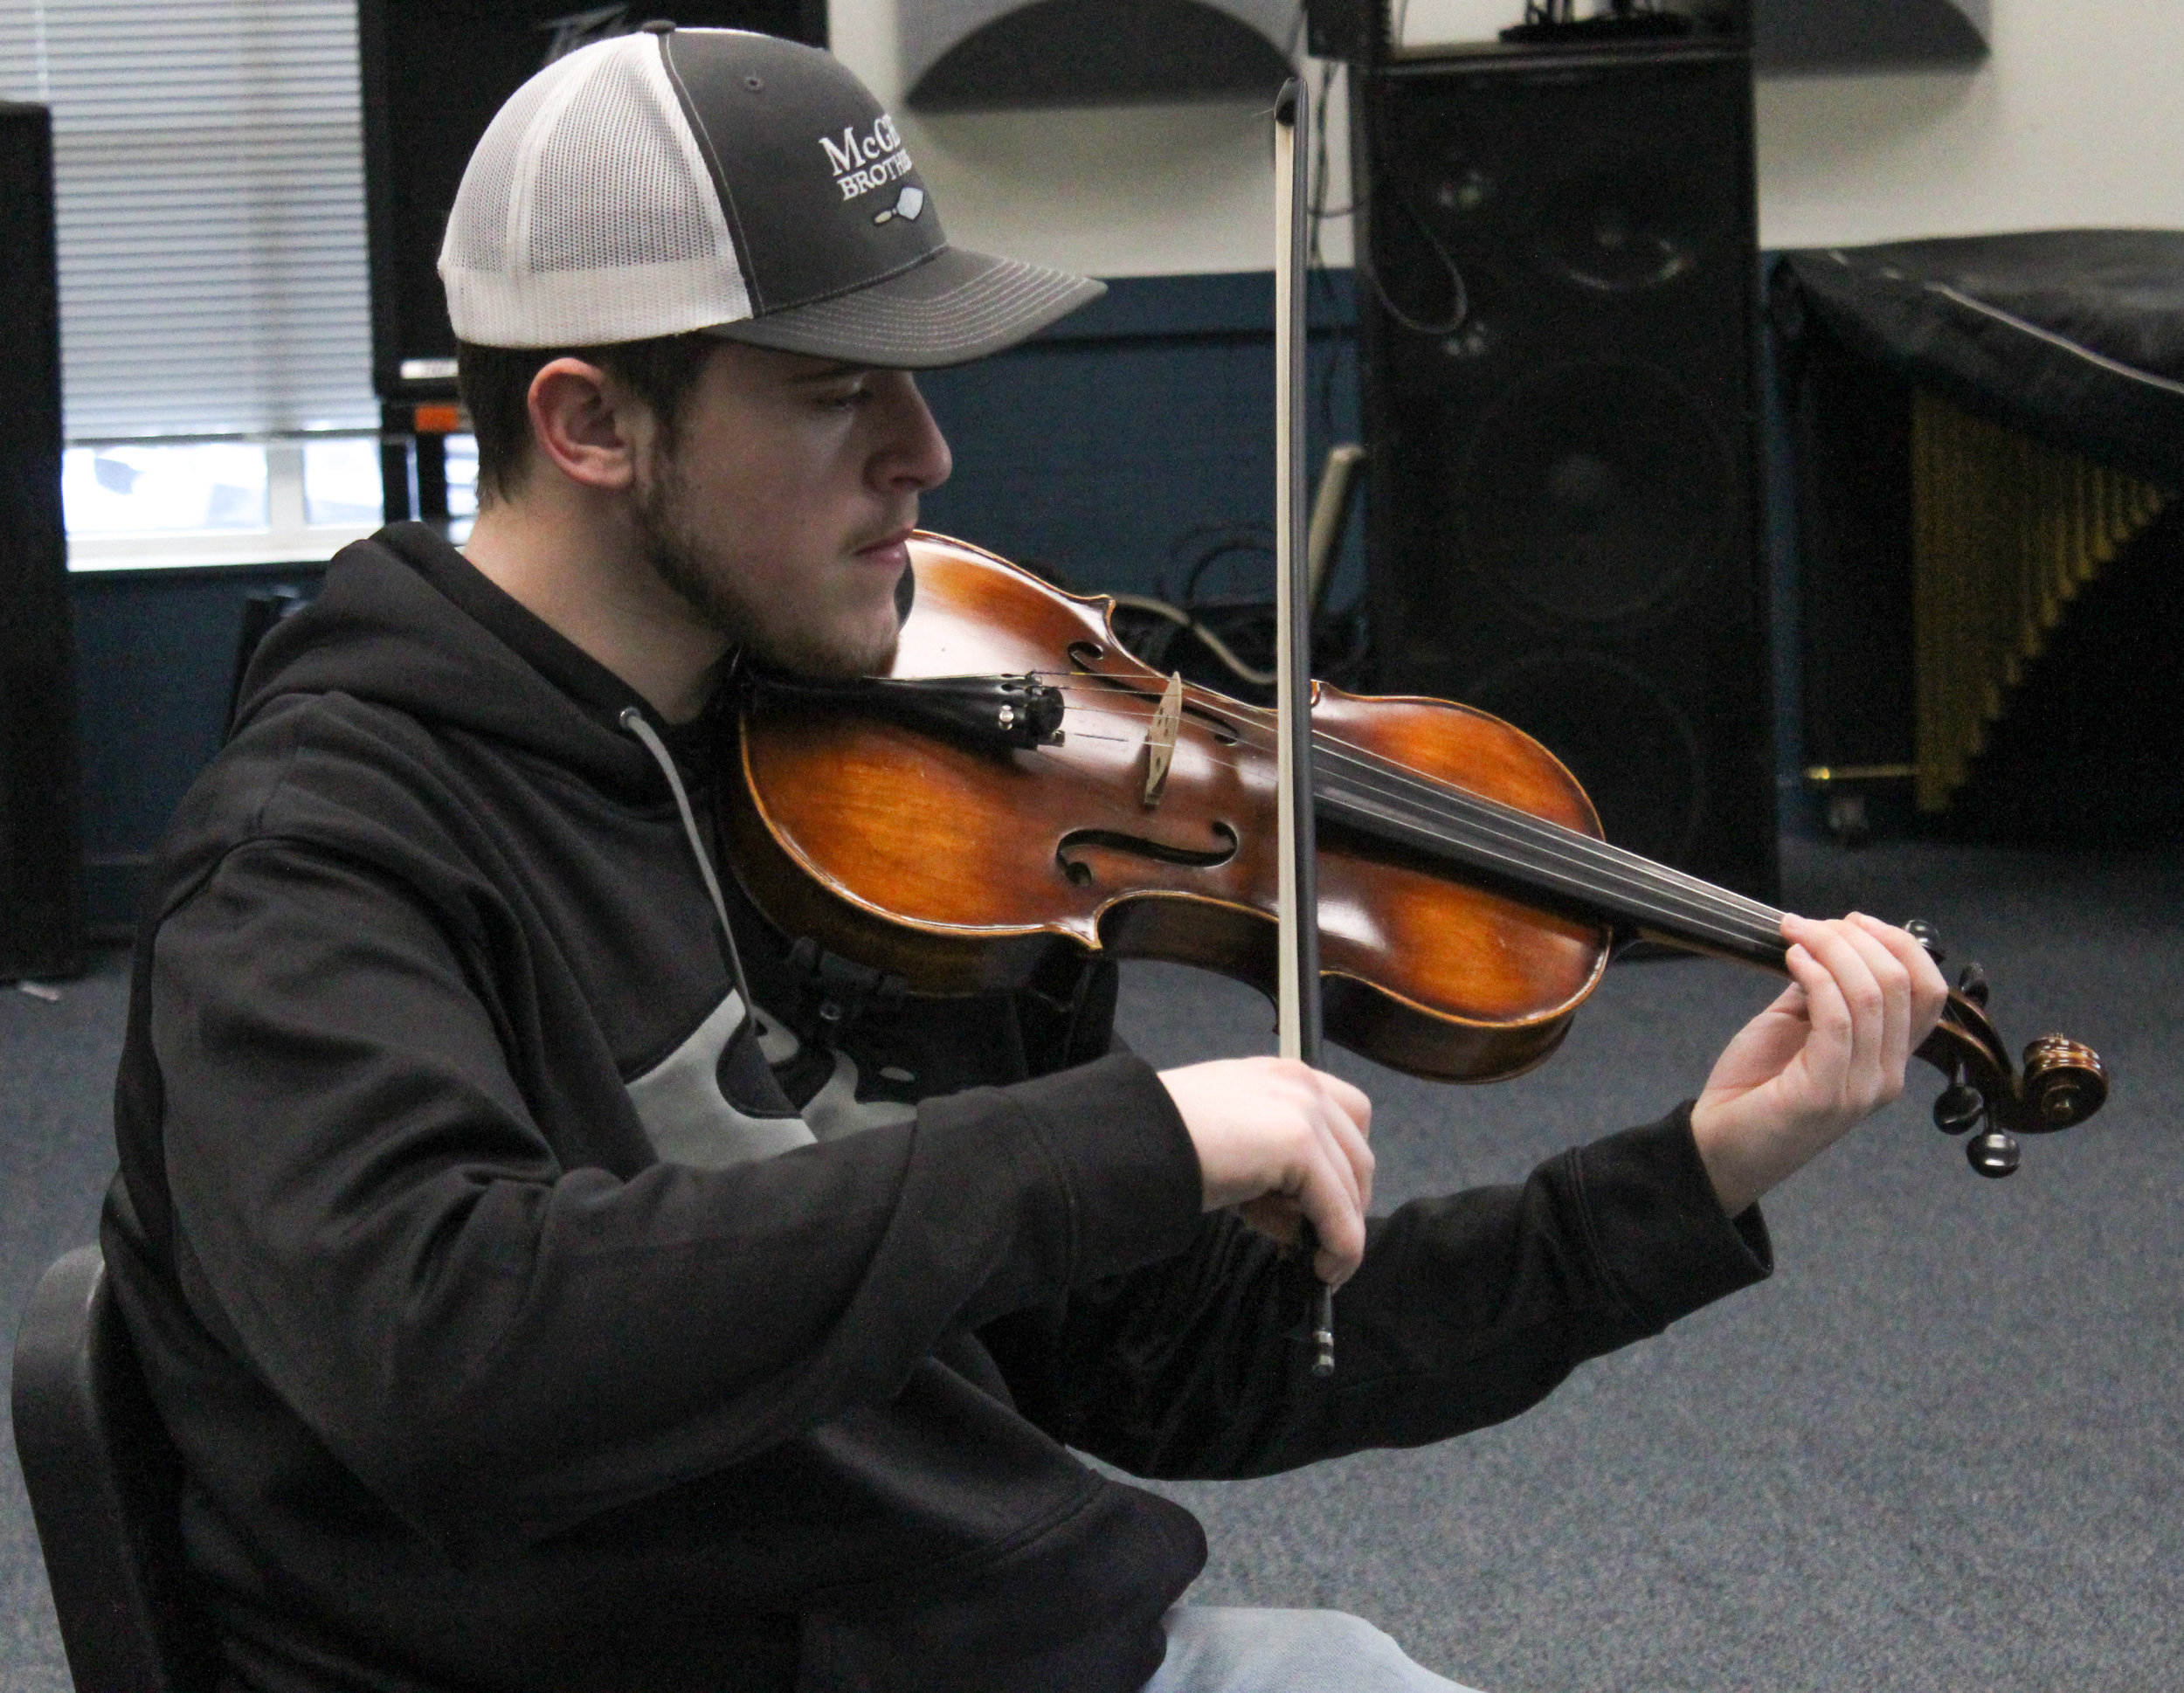 Brandon McAlister plays along with the orchestra using the violin.